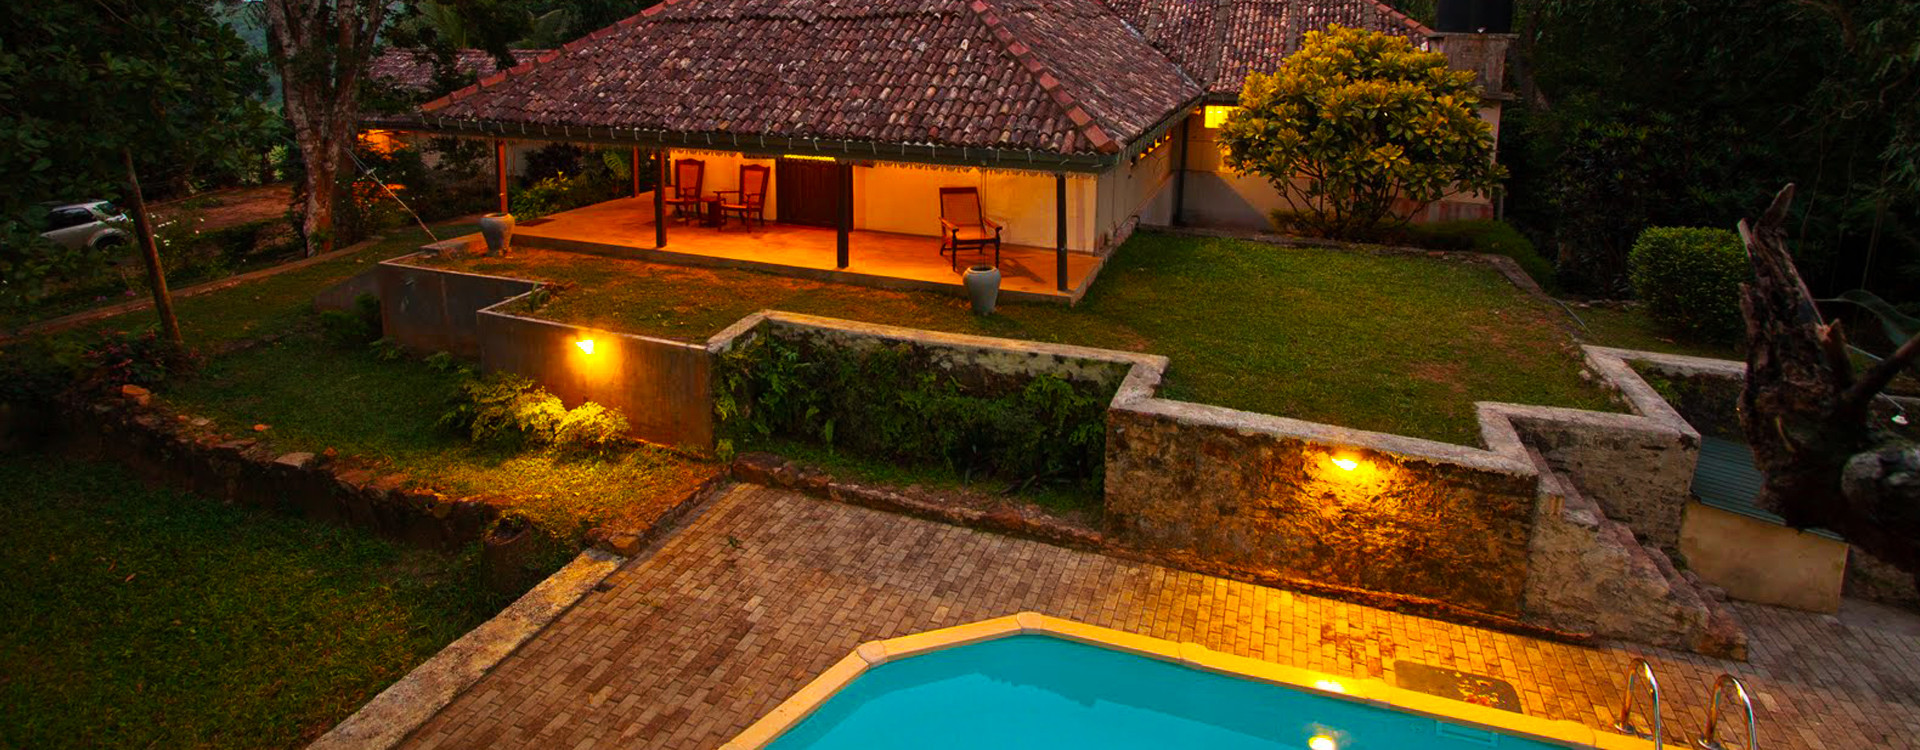 Nadun Uyana Holiday Bungalow In Galle Sri Lanka Accommodation In Galle Visit Galle Sri